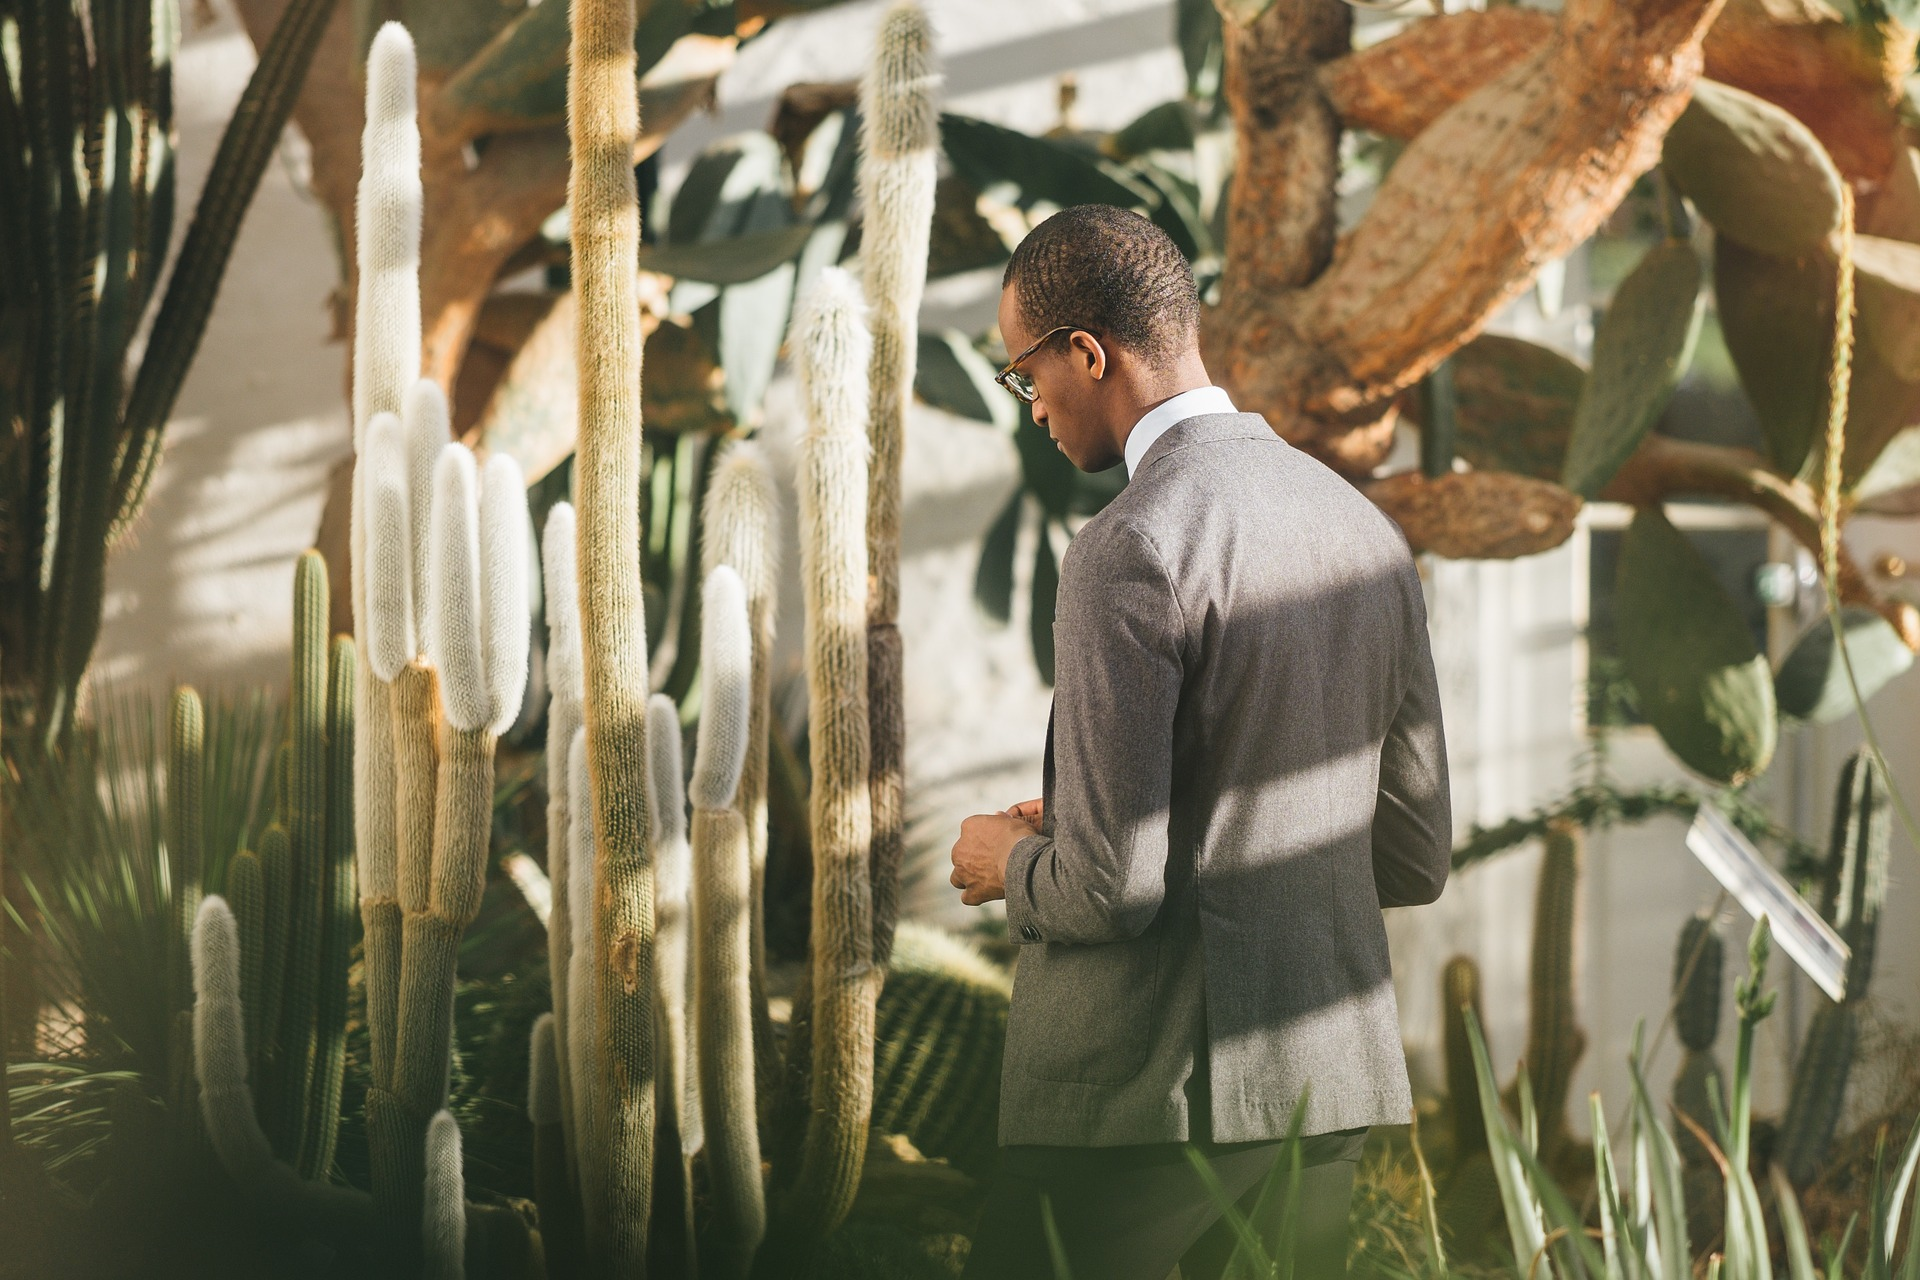 Man standing in front of plants